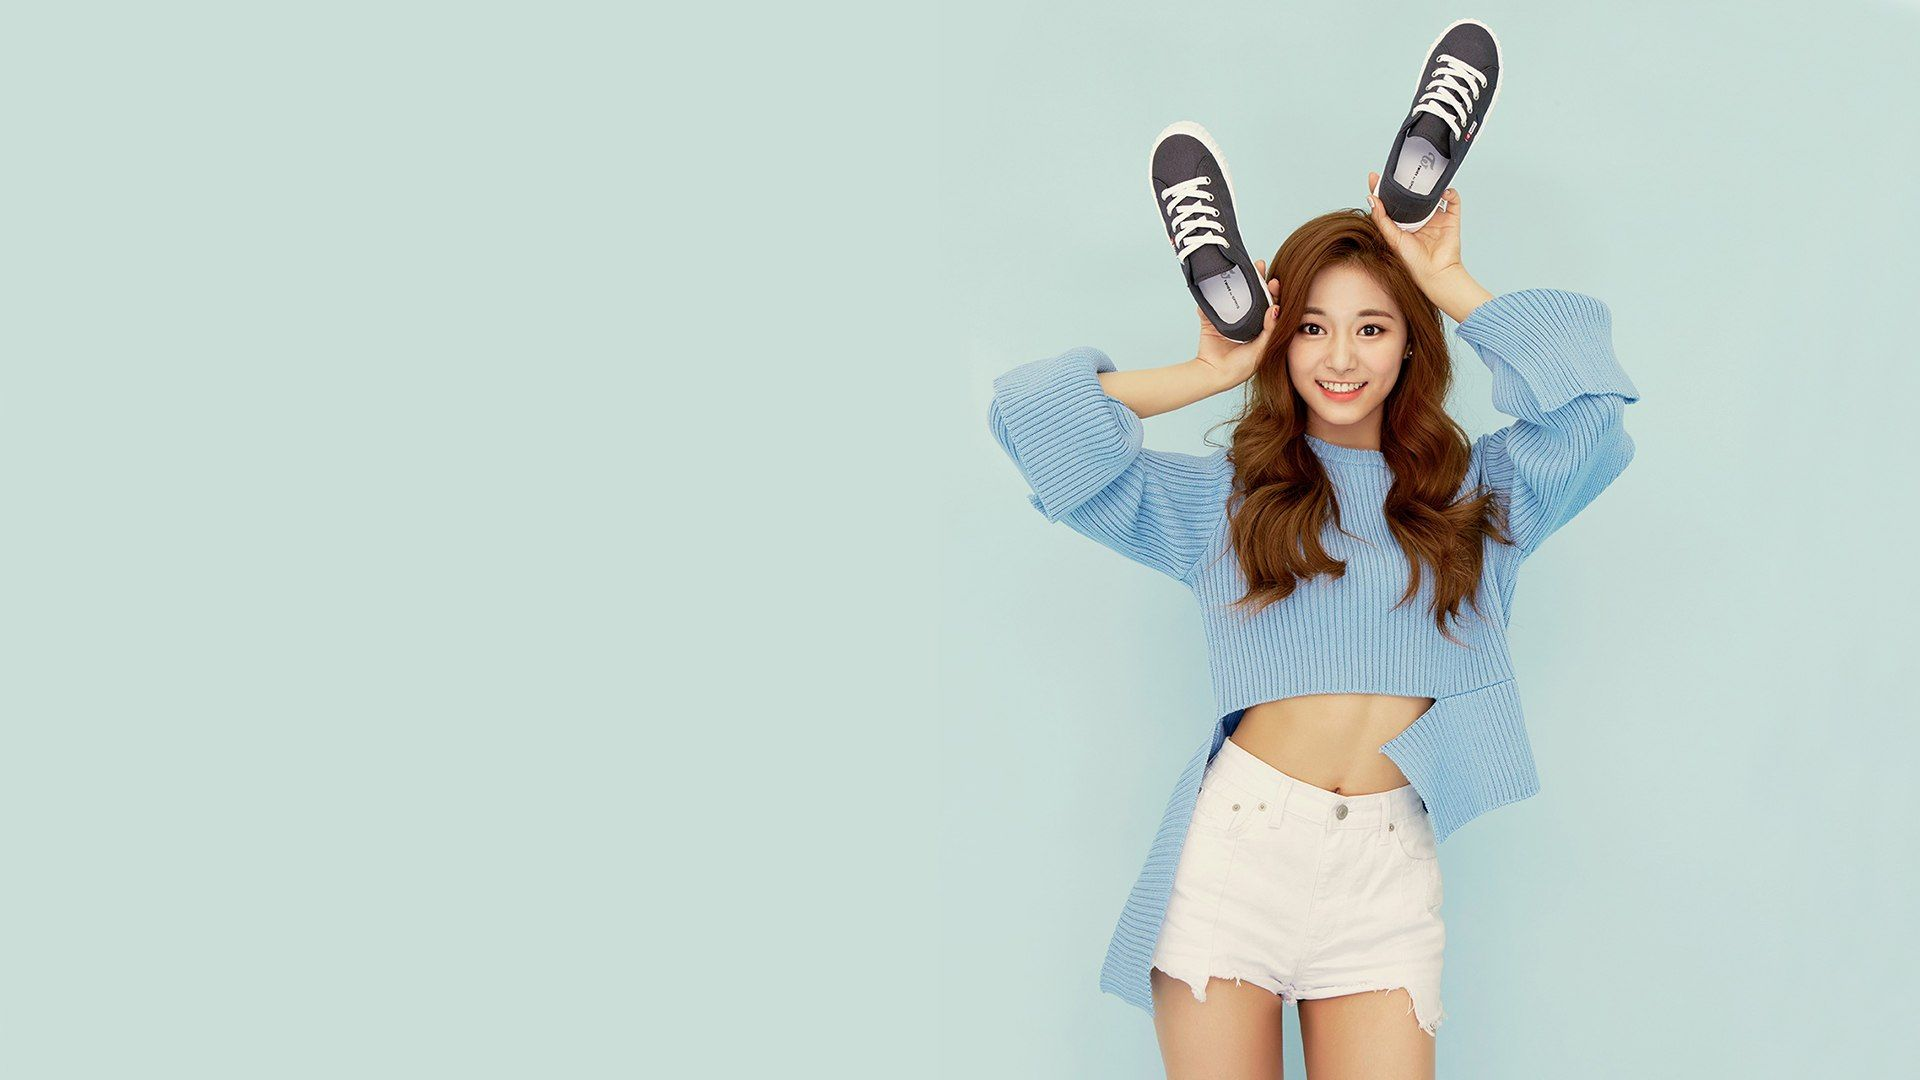 1920x1080 Hd Wallpaper Of Tzuyu Chou Tzu Yu Taiwanese Twice Girl